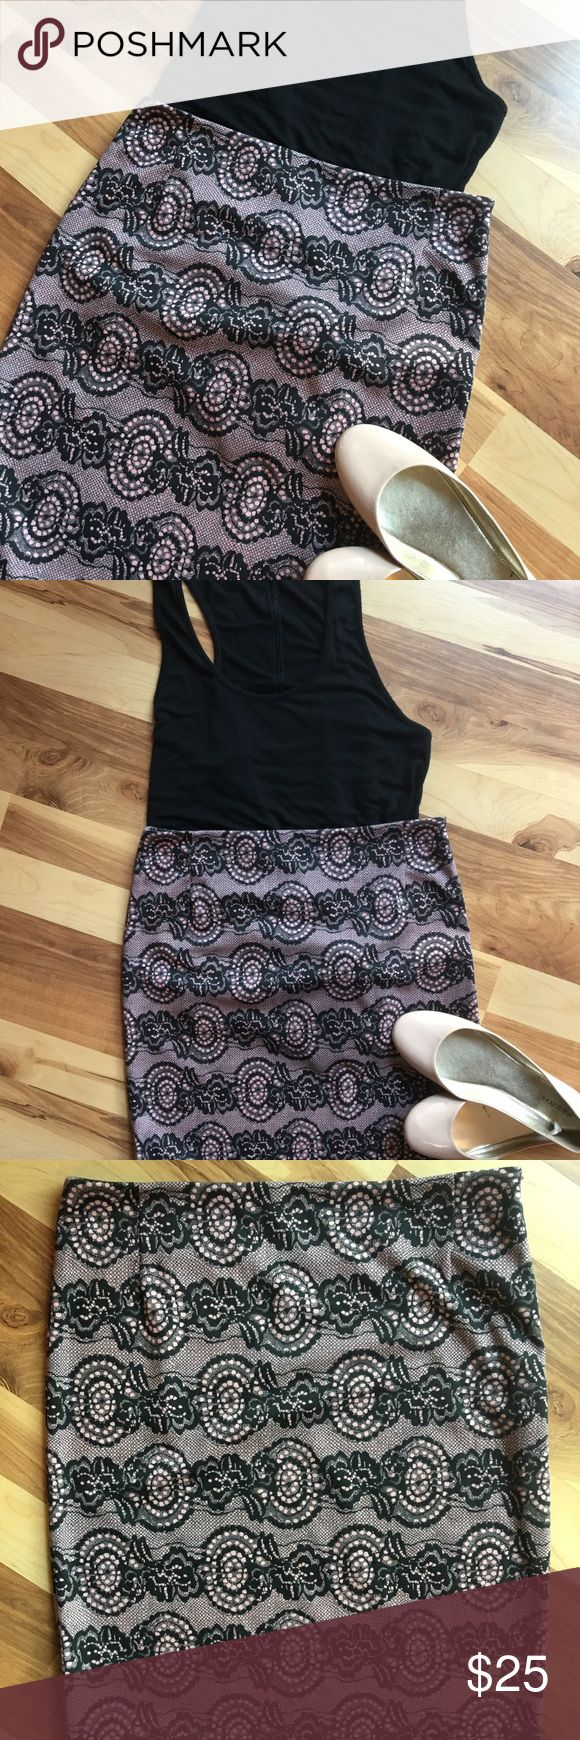 """Lace pink and black printed mini skirt! YEST brand Lace pink and black printed mini skirt! YEST brand. Side zipper. Very comfortable and stretchy! Pair with flats or heels and a dressy blouse. Size small. Length 21"""". No flaws. Never worn. Skirts Mini"""